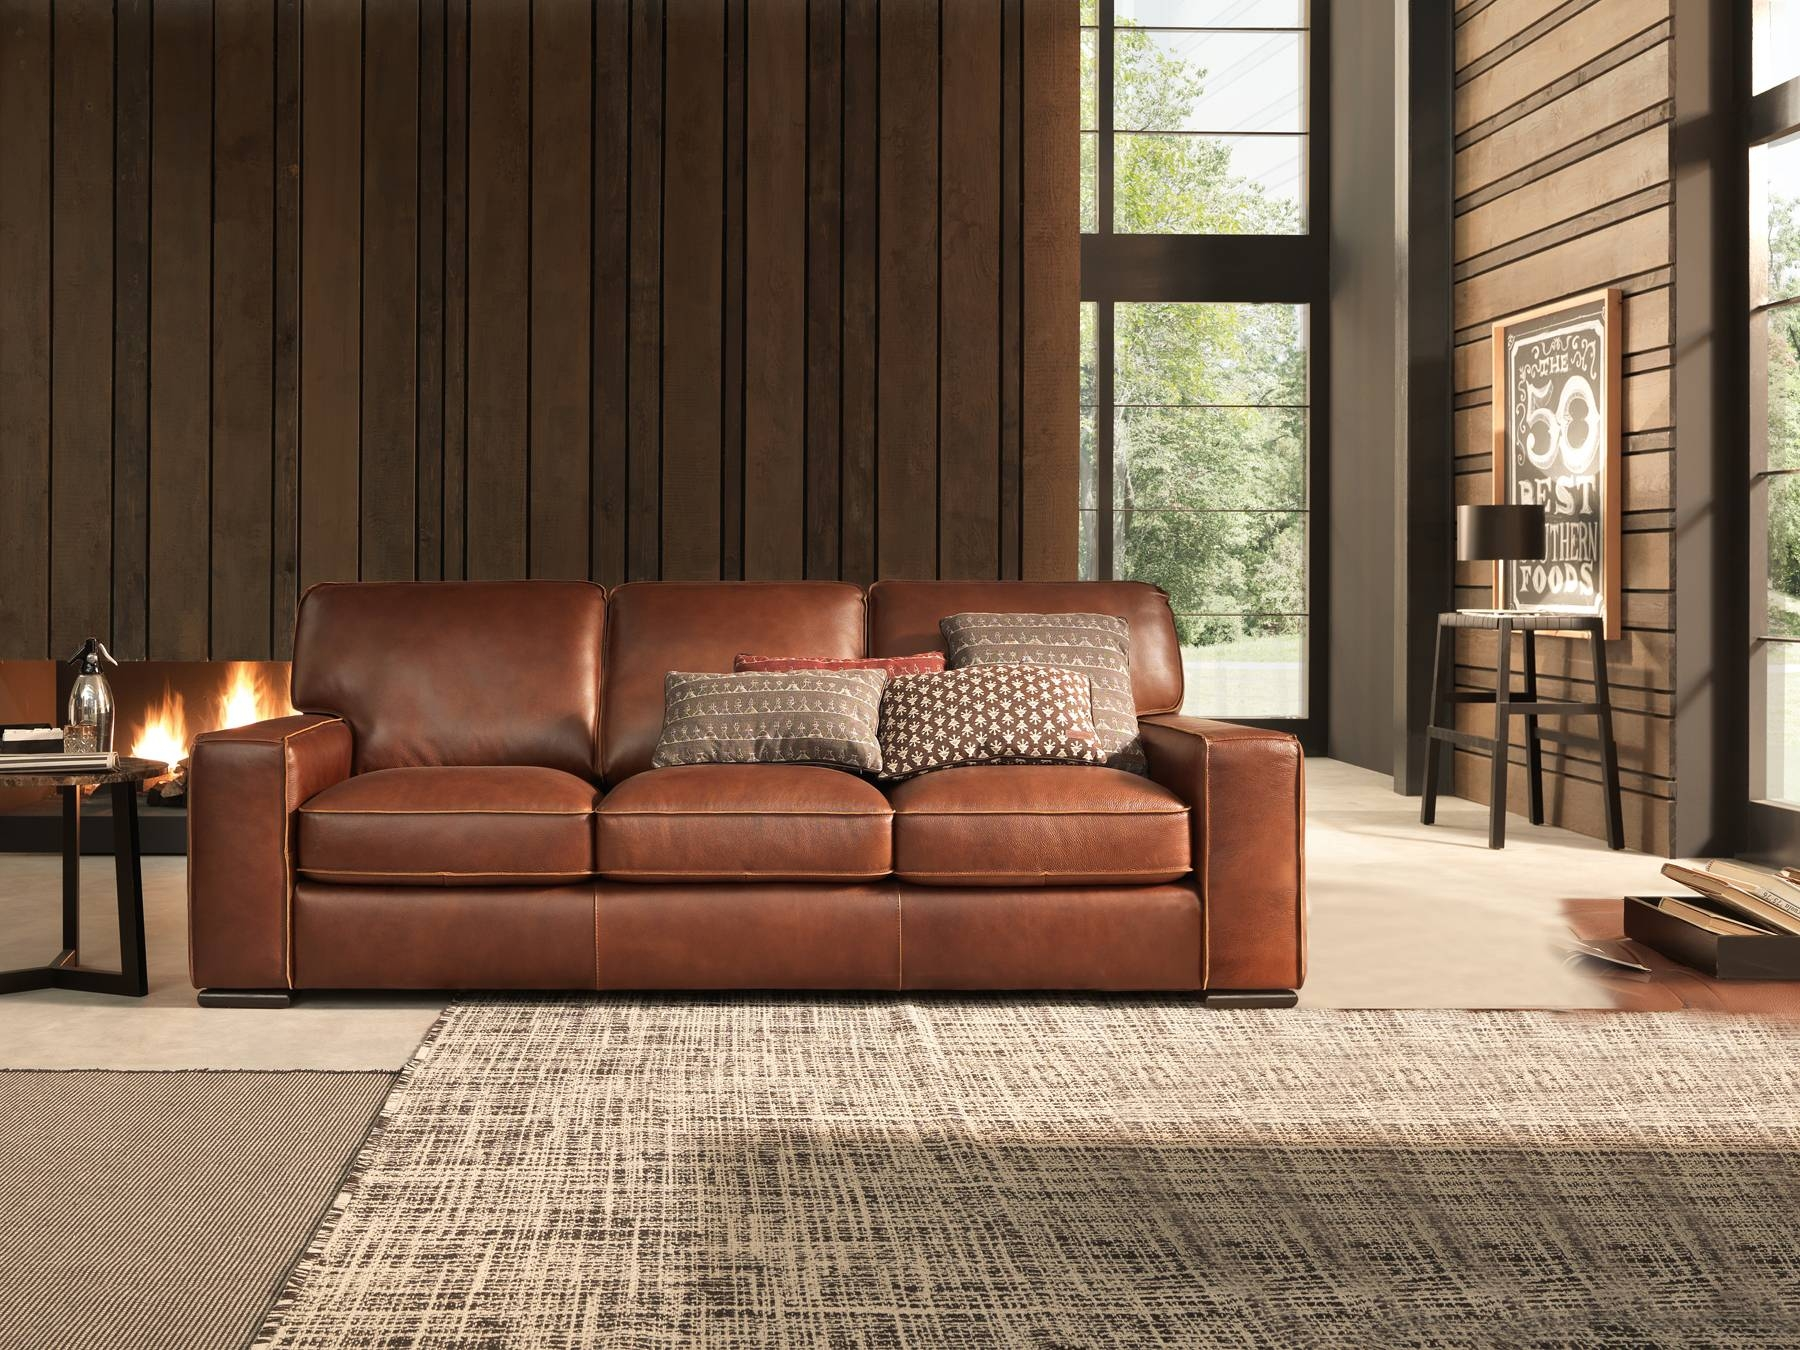 Leather Sofa Furniture Guide - How To Avoid Common Mistakes in European Leather Sofas (Image 15 of 30)